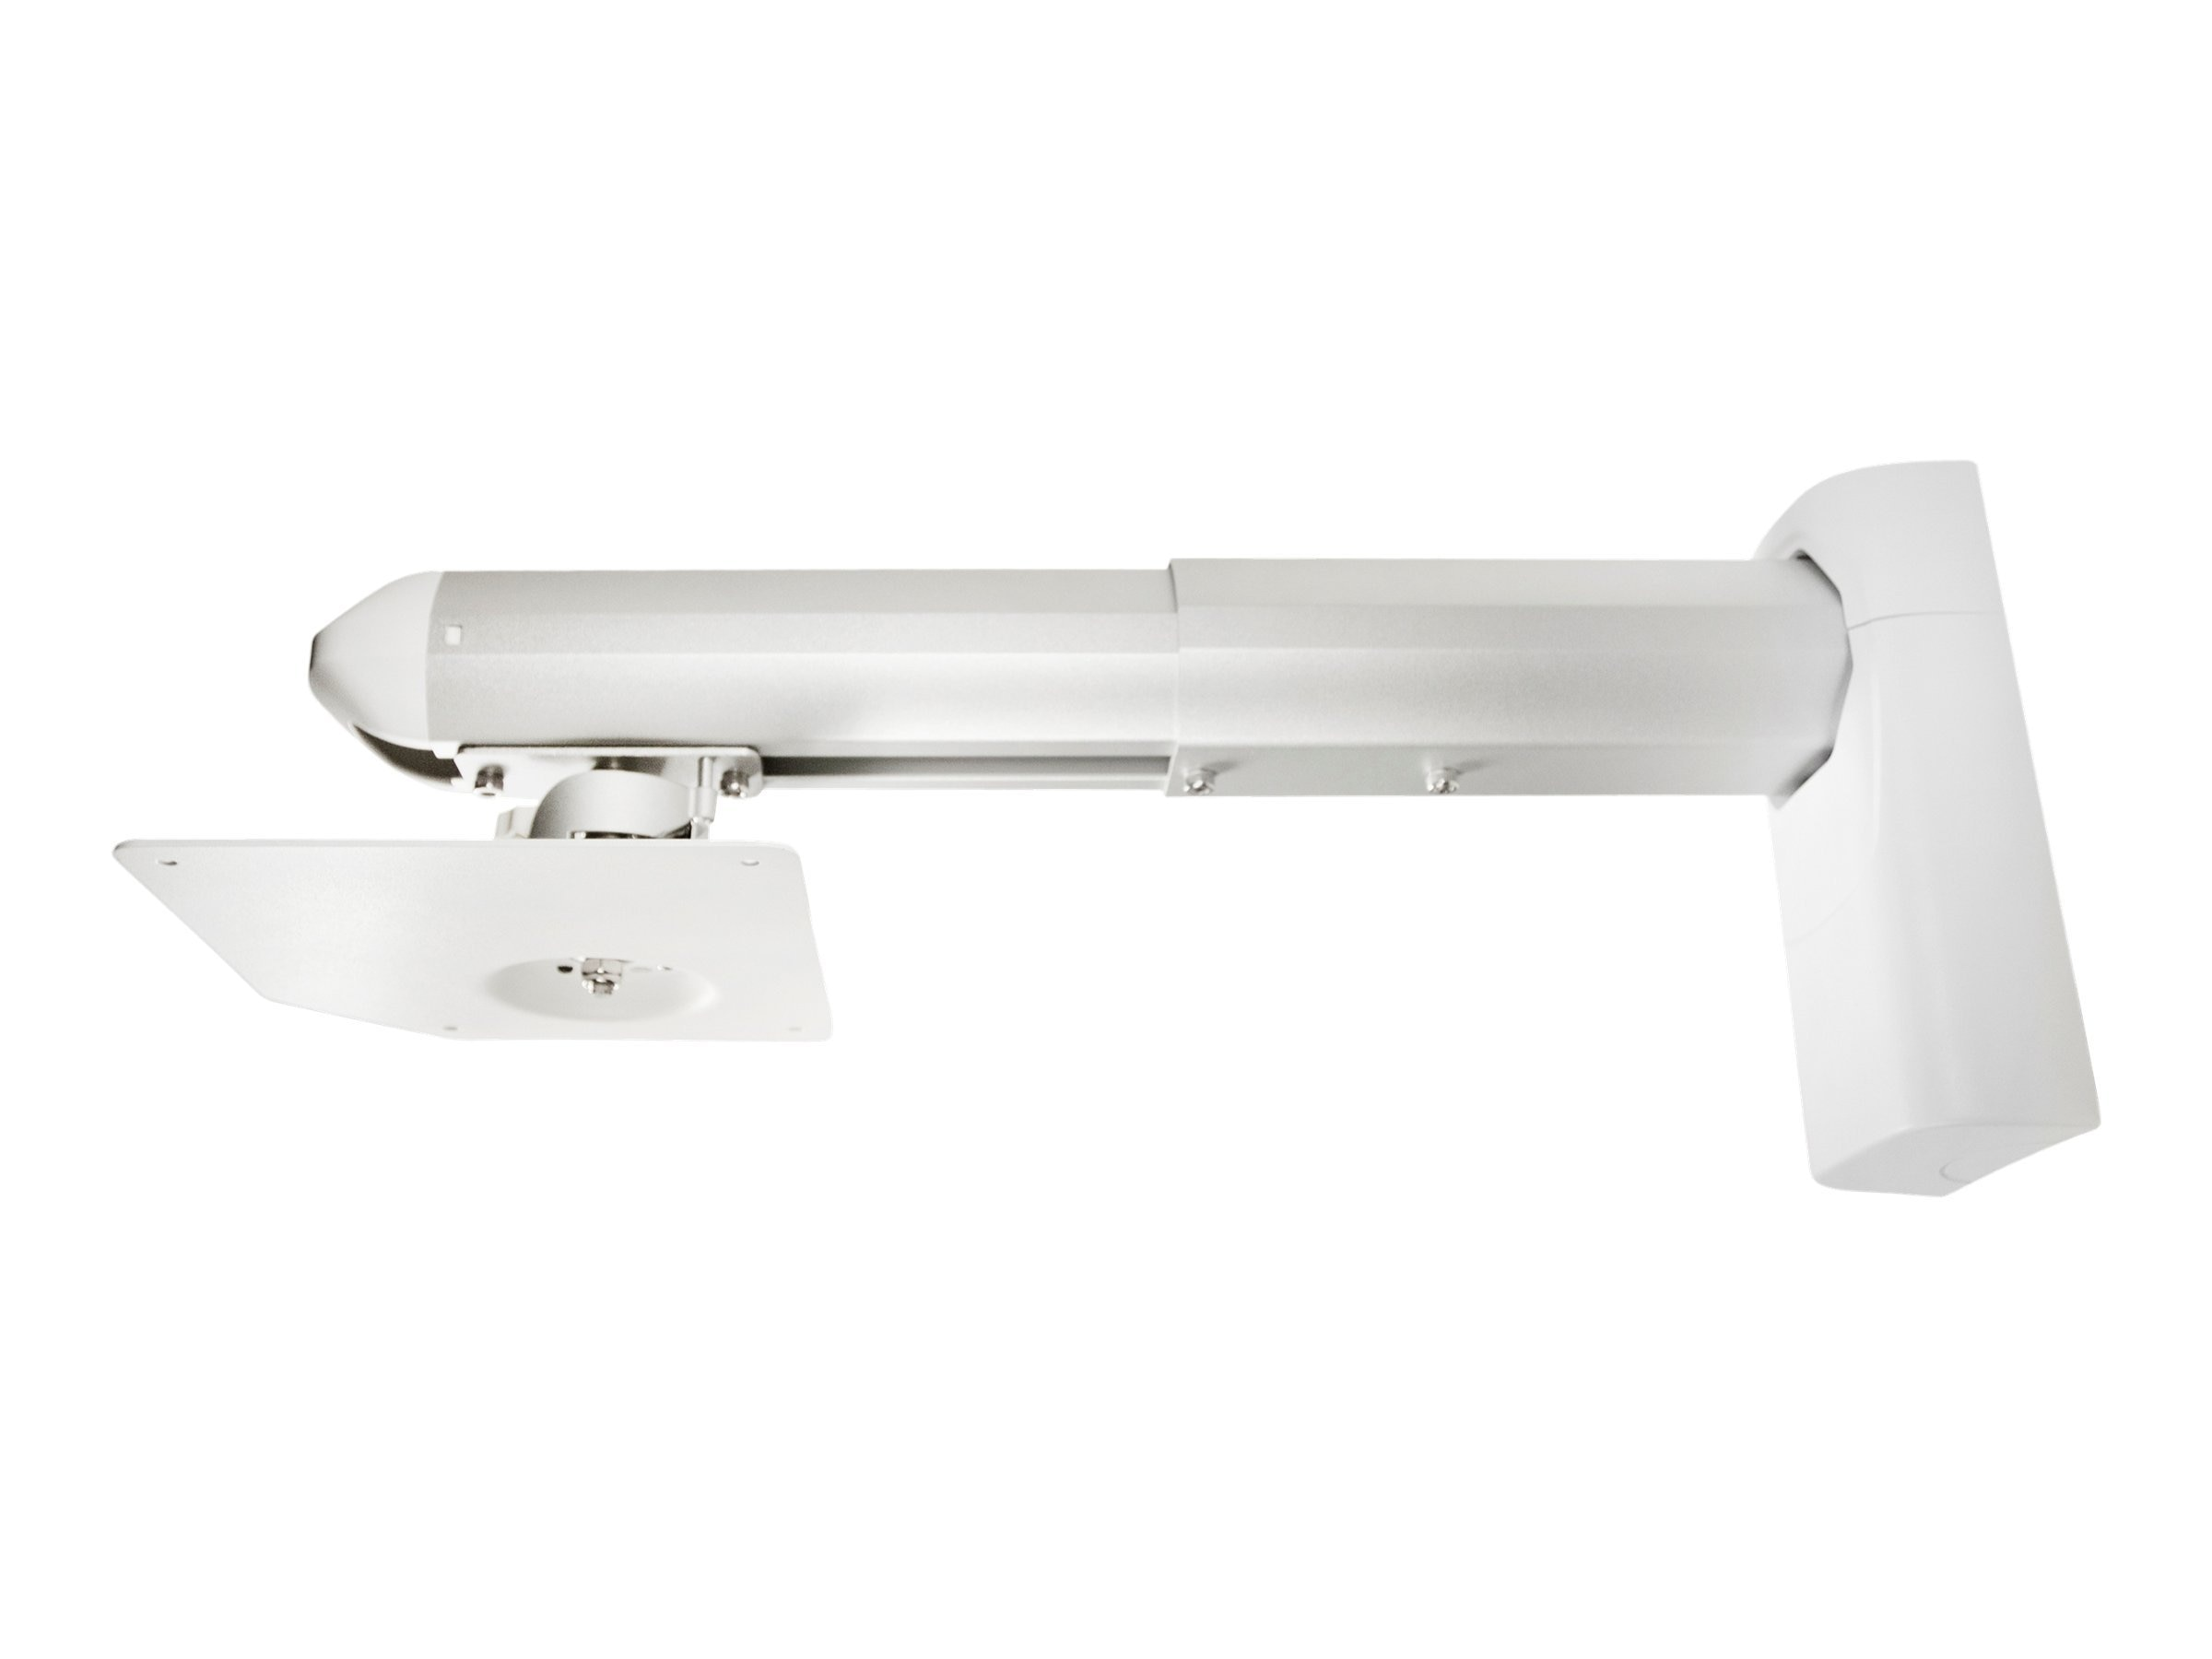 Optoma Single Stud, Telescoping Wall Mount for Ultra Short-Throw Projector, BM-3002N